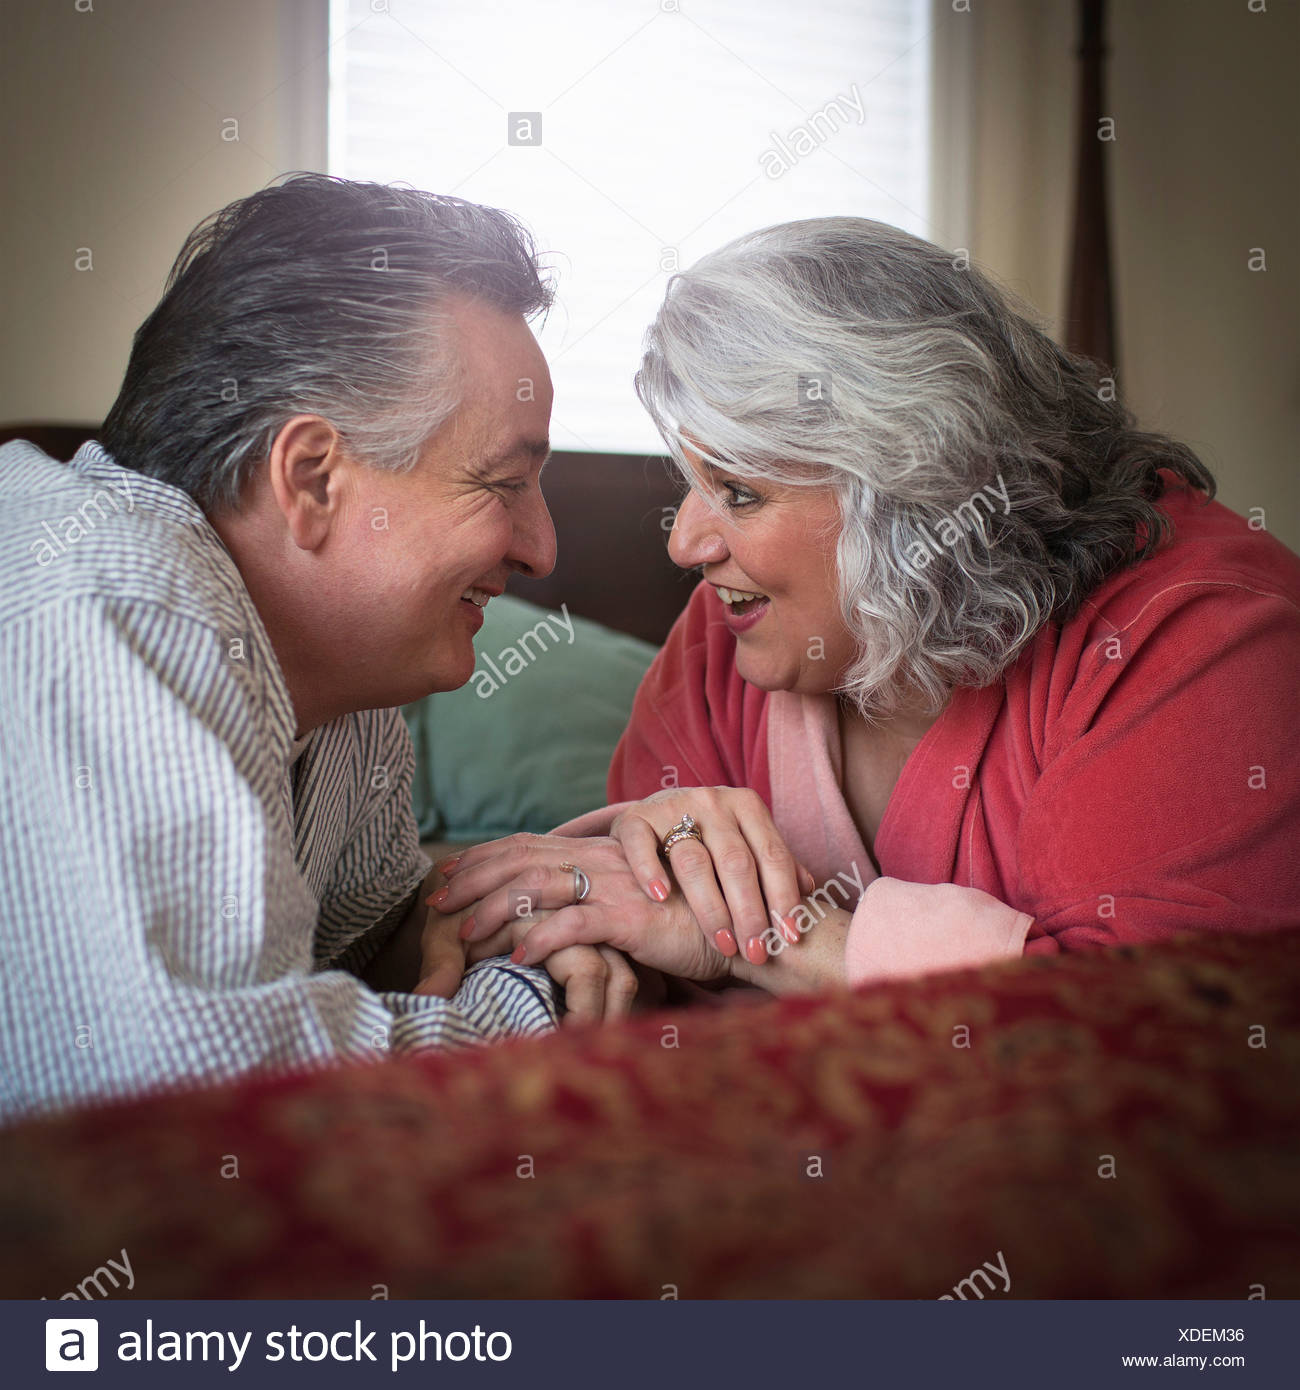 Affectionate mature adult couple lying on bed - Stock Image